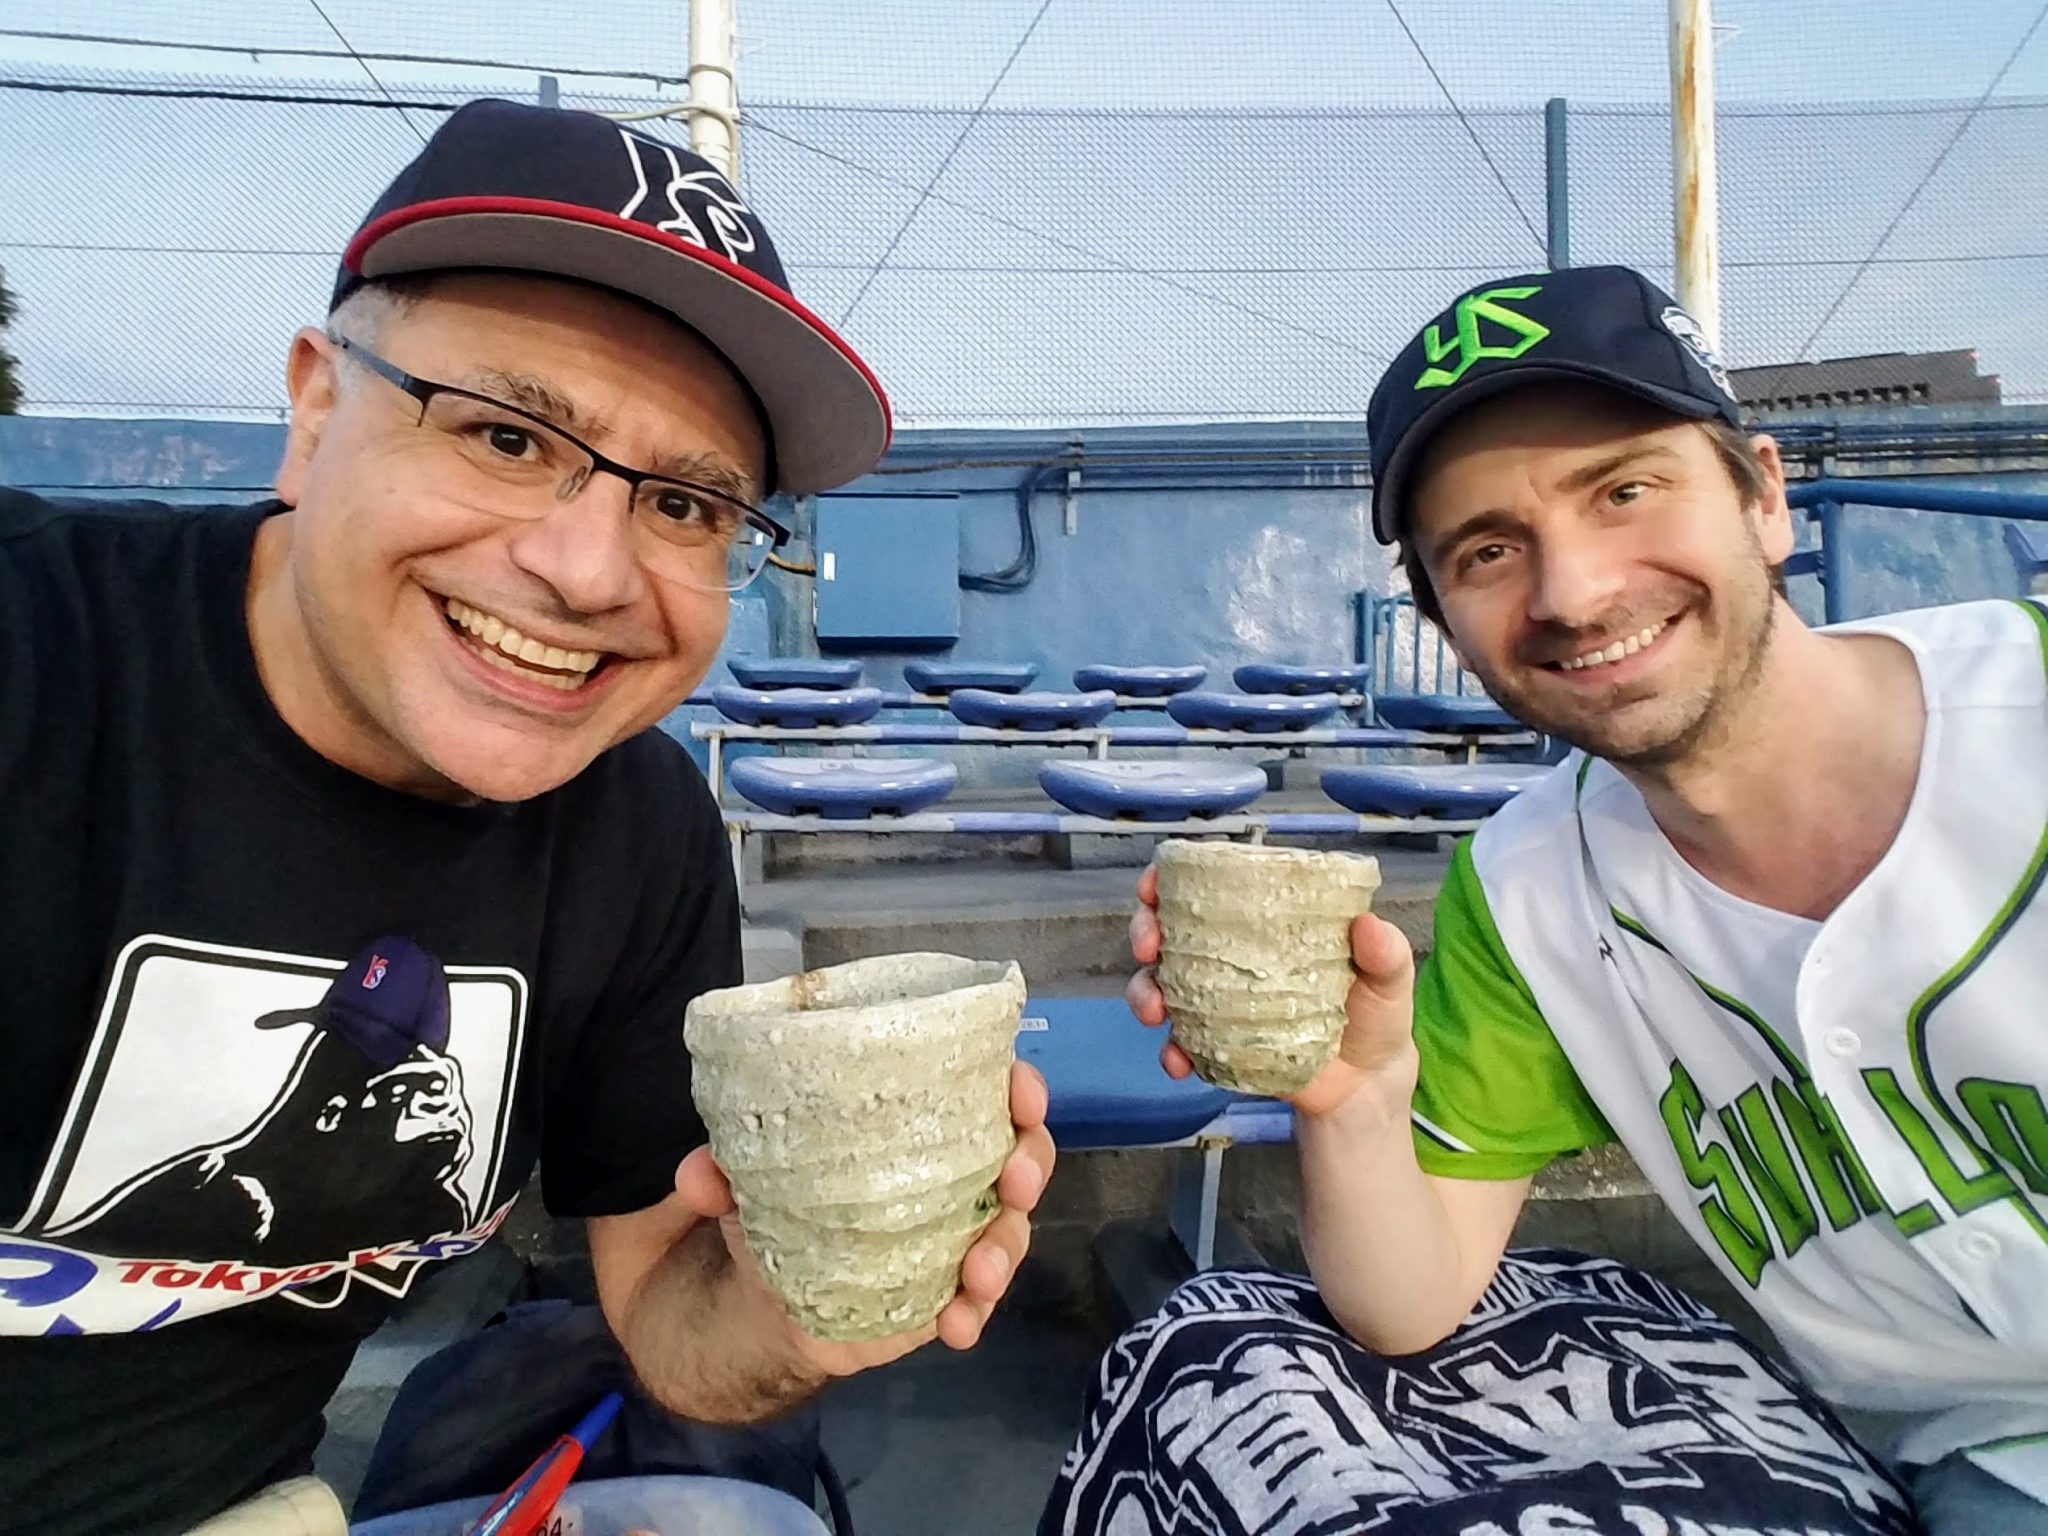 Christopher Pellegrini and Mac, Founder and Lead Guide of Maction Planet Bespoke Japan Travel, drink shochu at Jingu Stadium